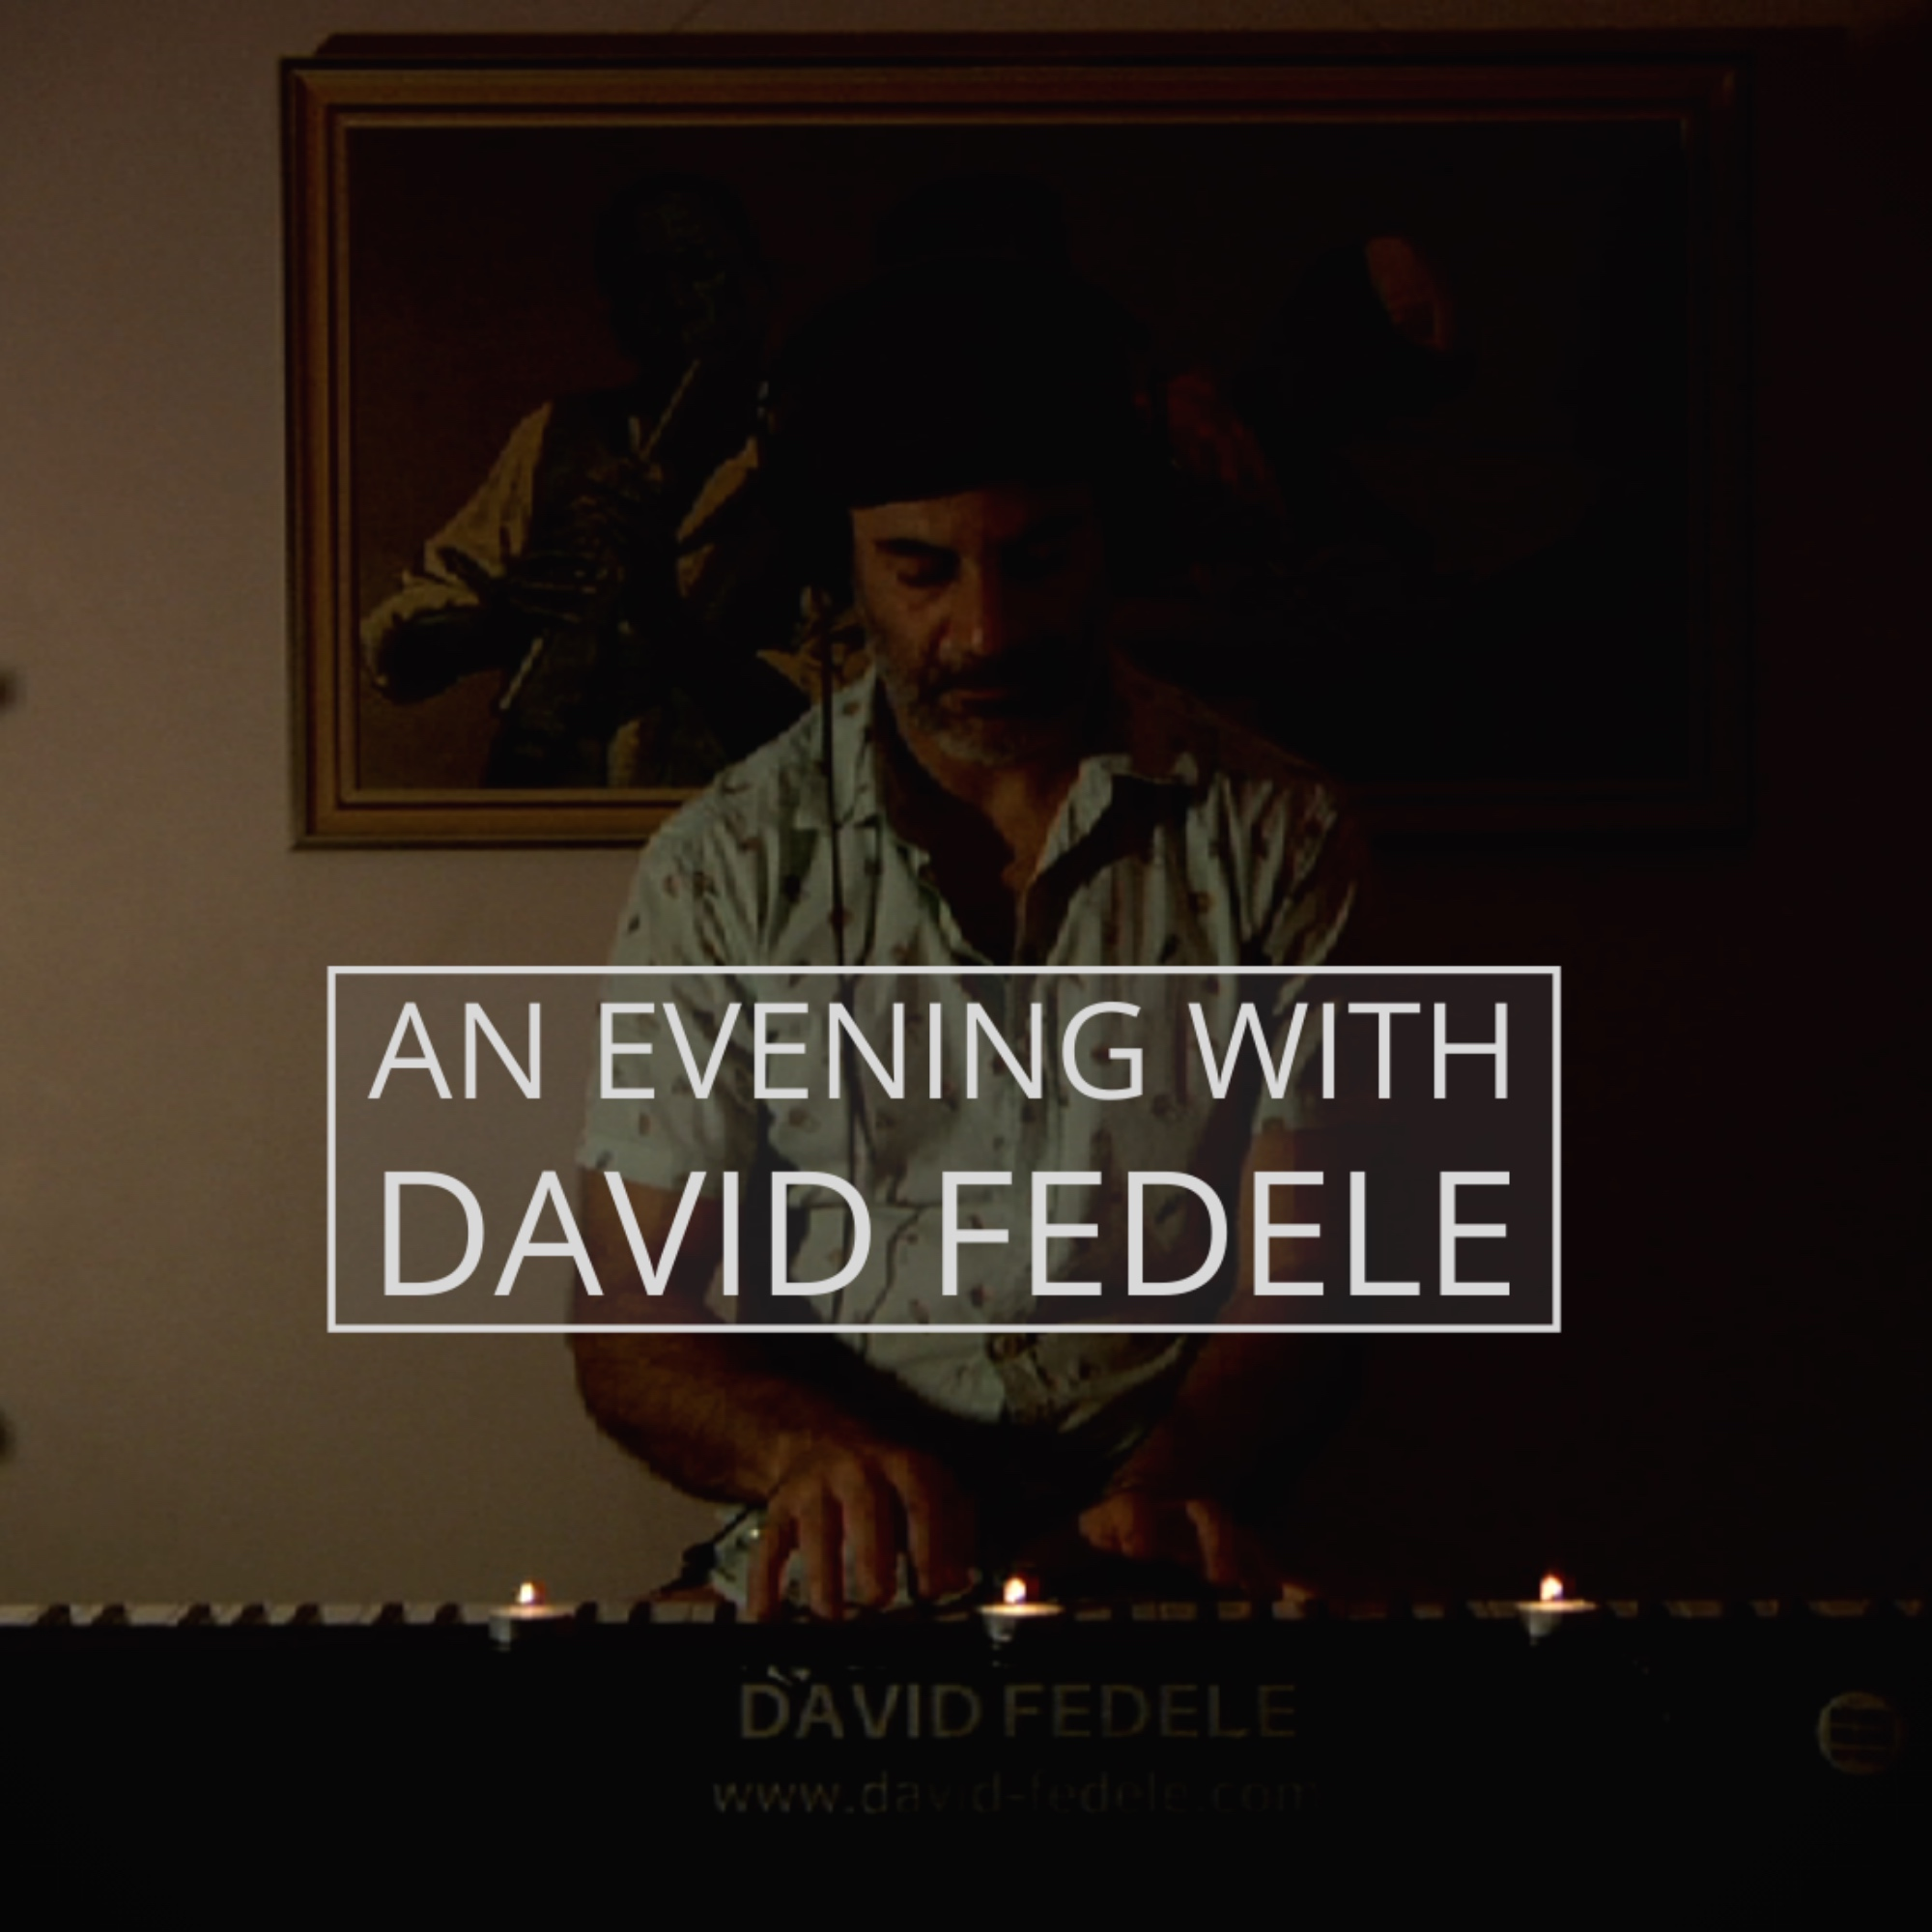 an-evening-with-david-fedele-square